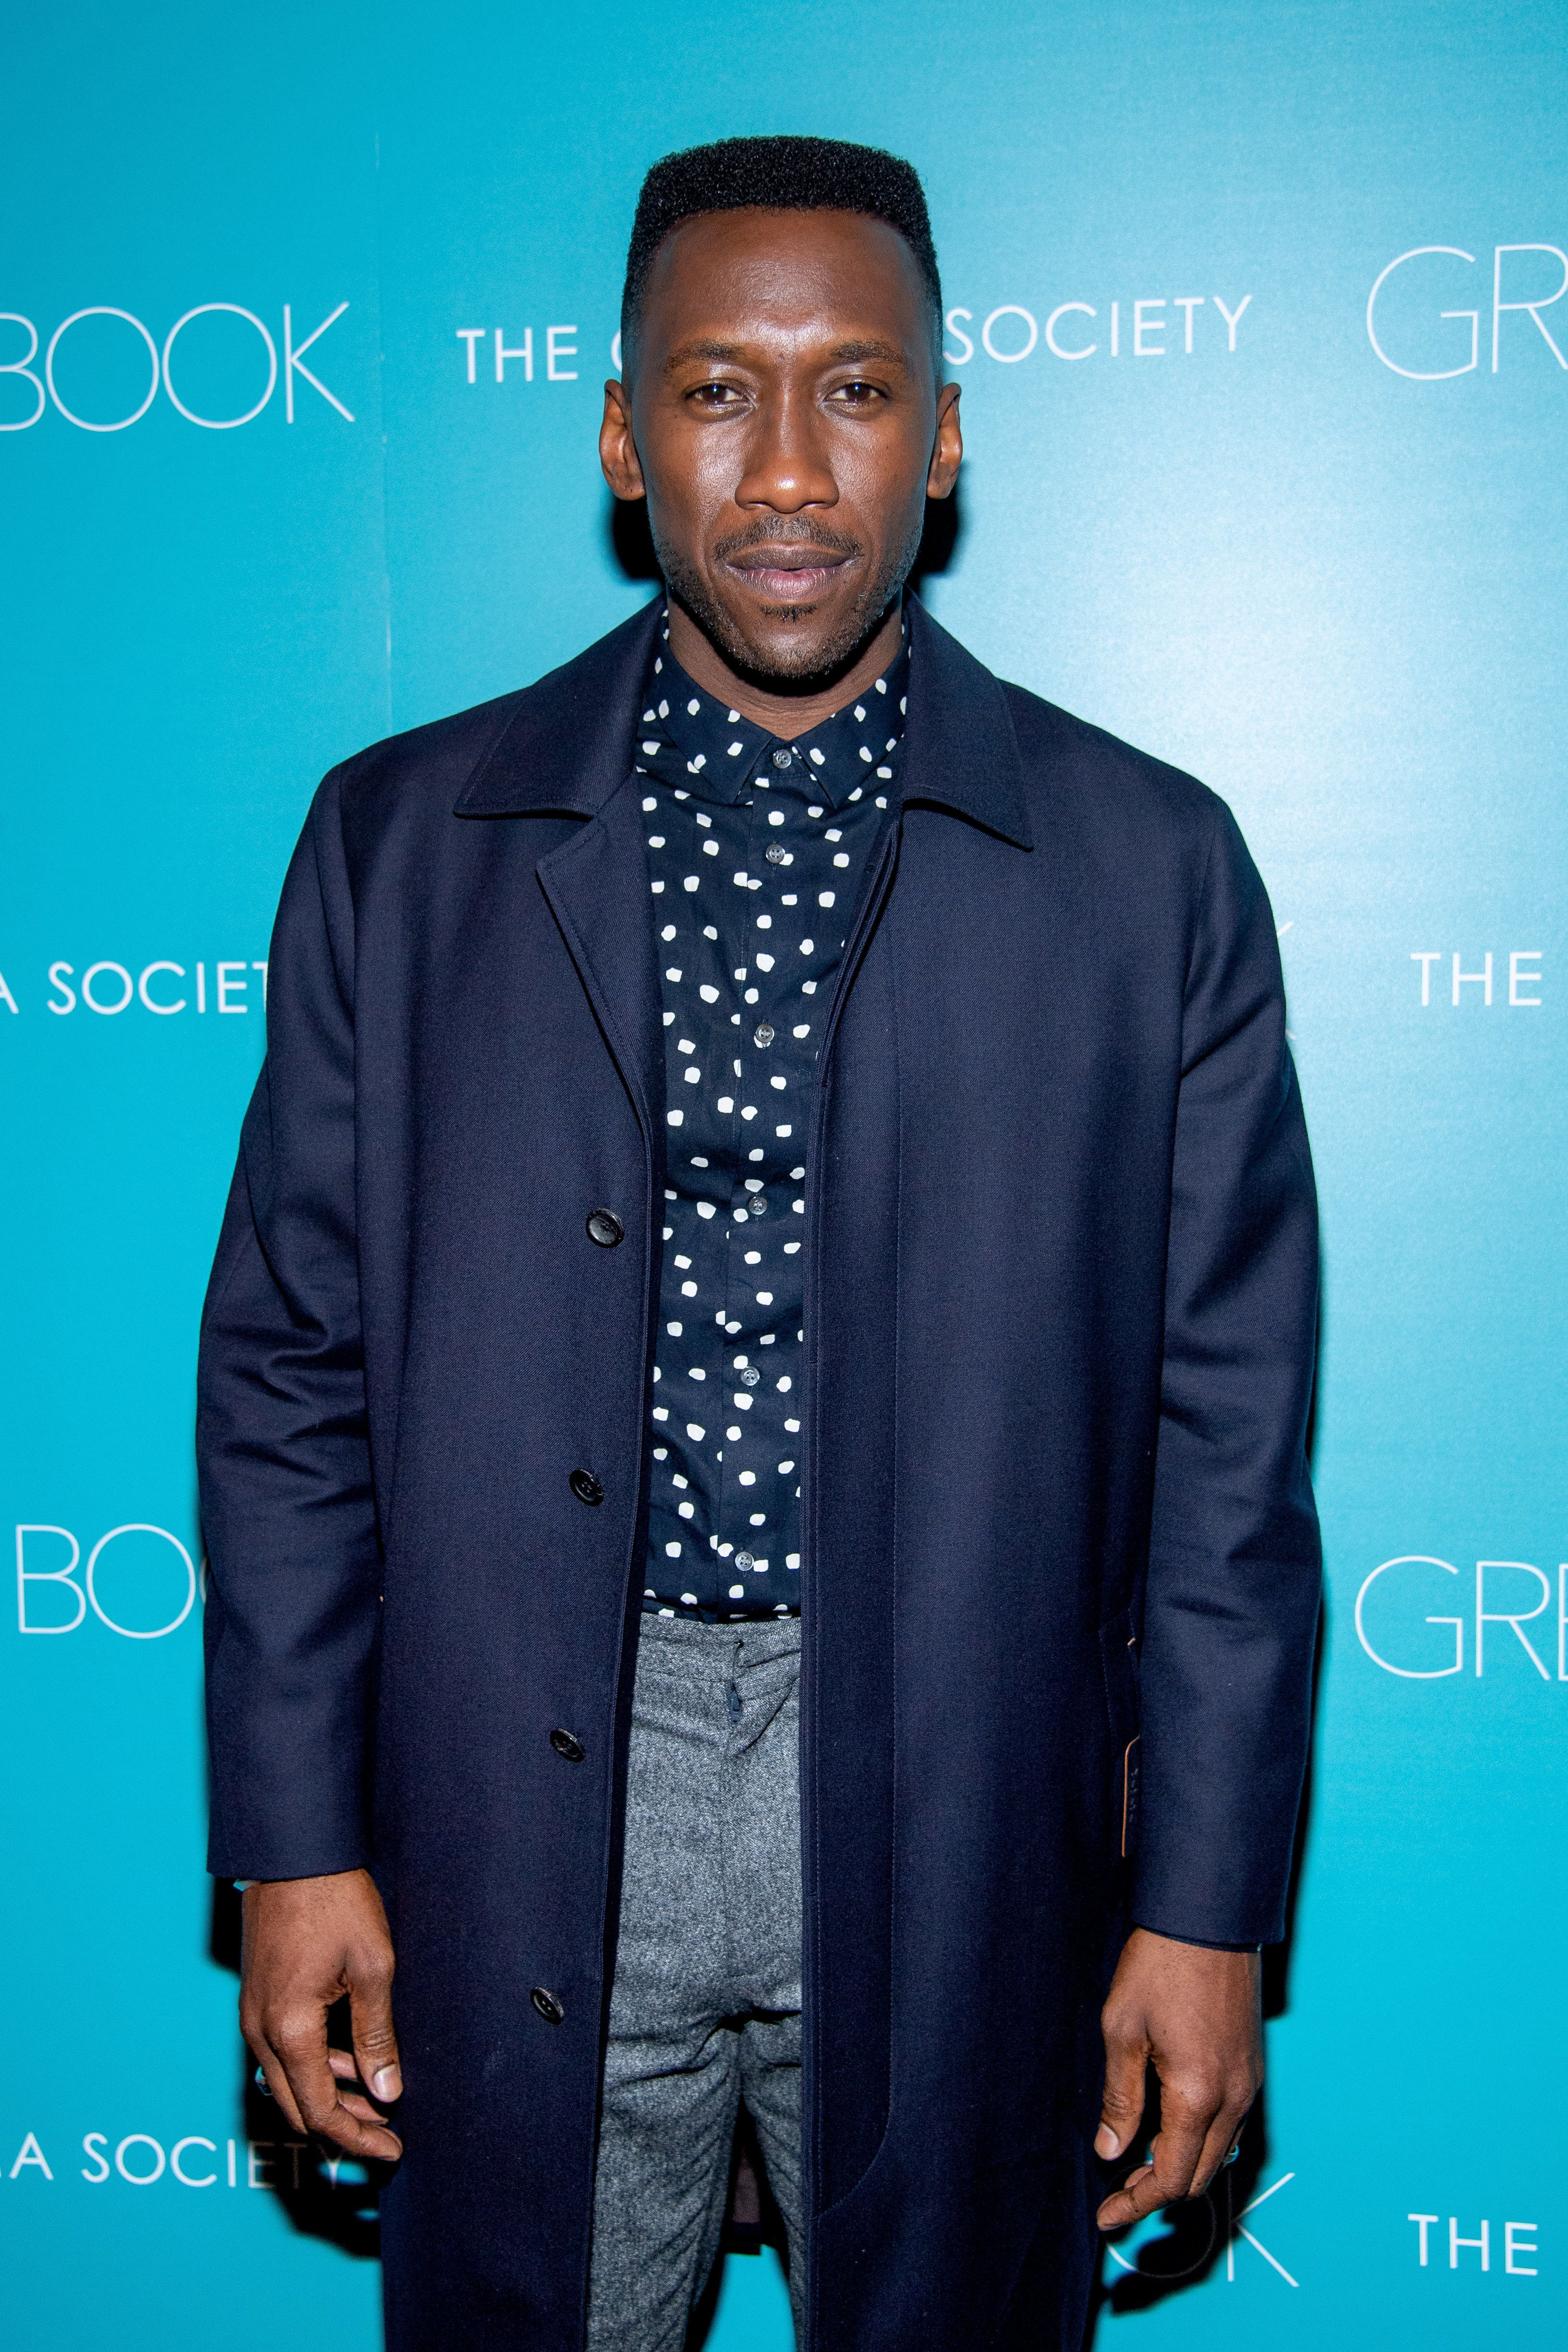 NEW YORK, NEW YORK - NOVEMBER 14: Mahershala Ali attends the 'Green Book' New York Special Screening hosted by the Cinema Society at The Roxy Hotel Cinema on November 14, 2018 in New York City. (Photo by Roy Rochlin/Getty Images)